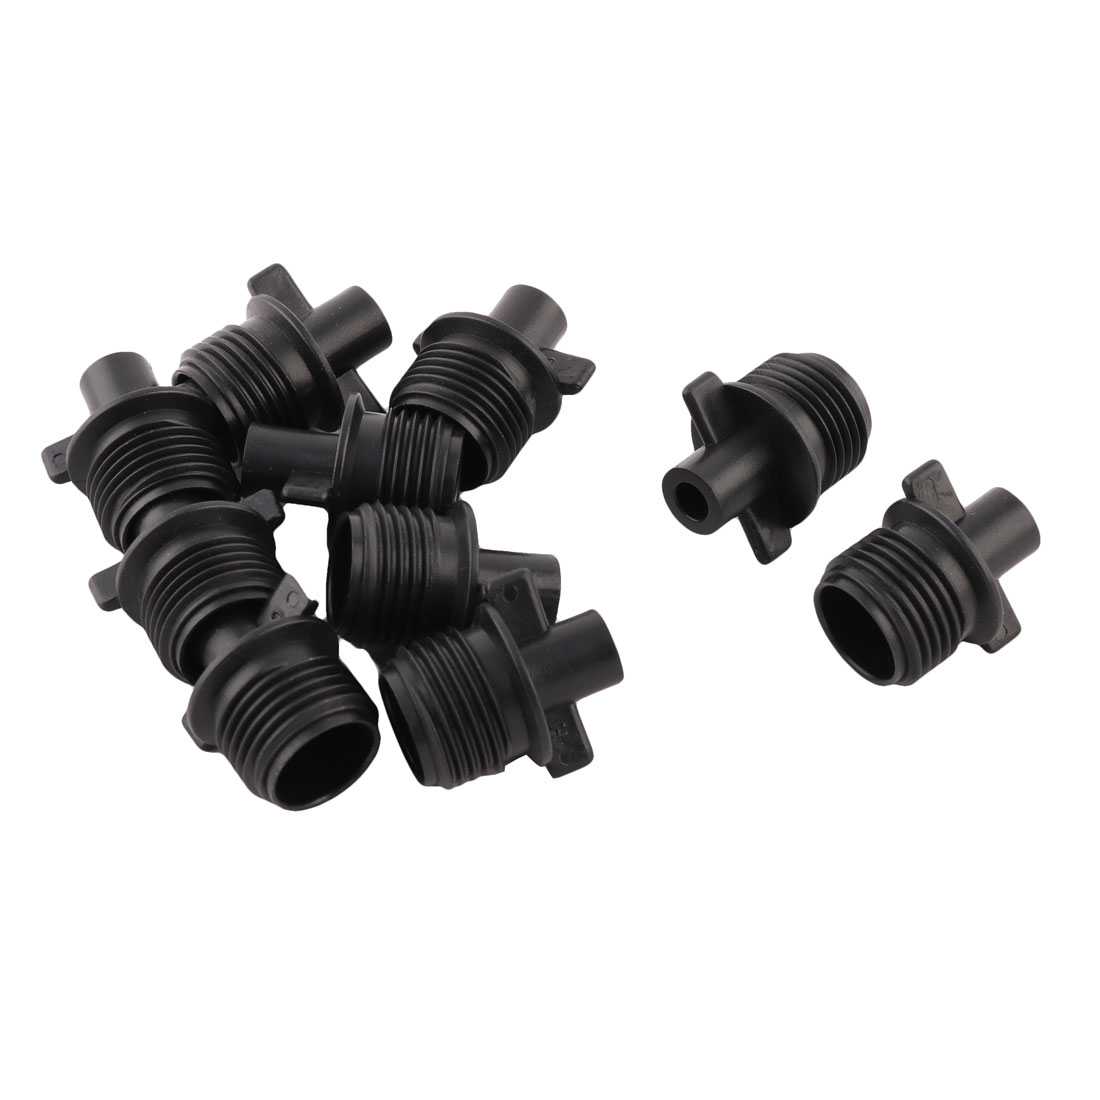 Plant Irrigation Fittings Pipe Tube Connector Adapter 1/2BSP Thread Dia 10pcs